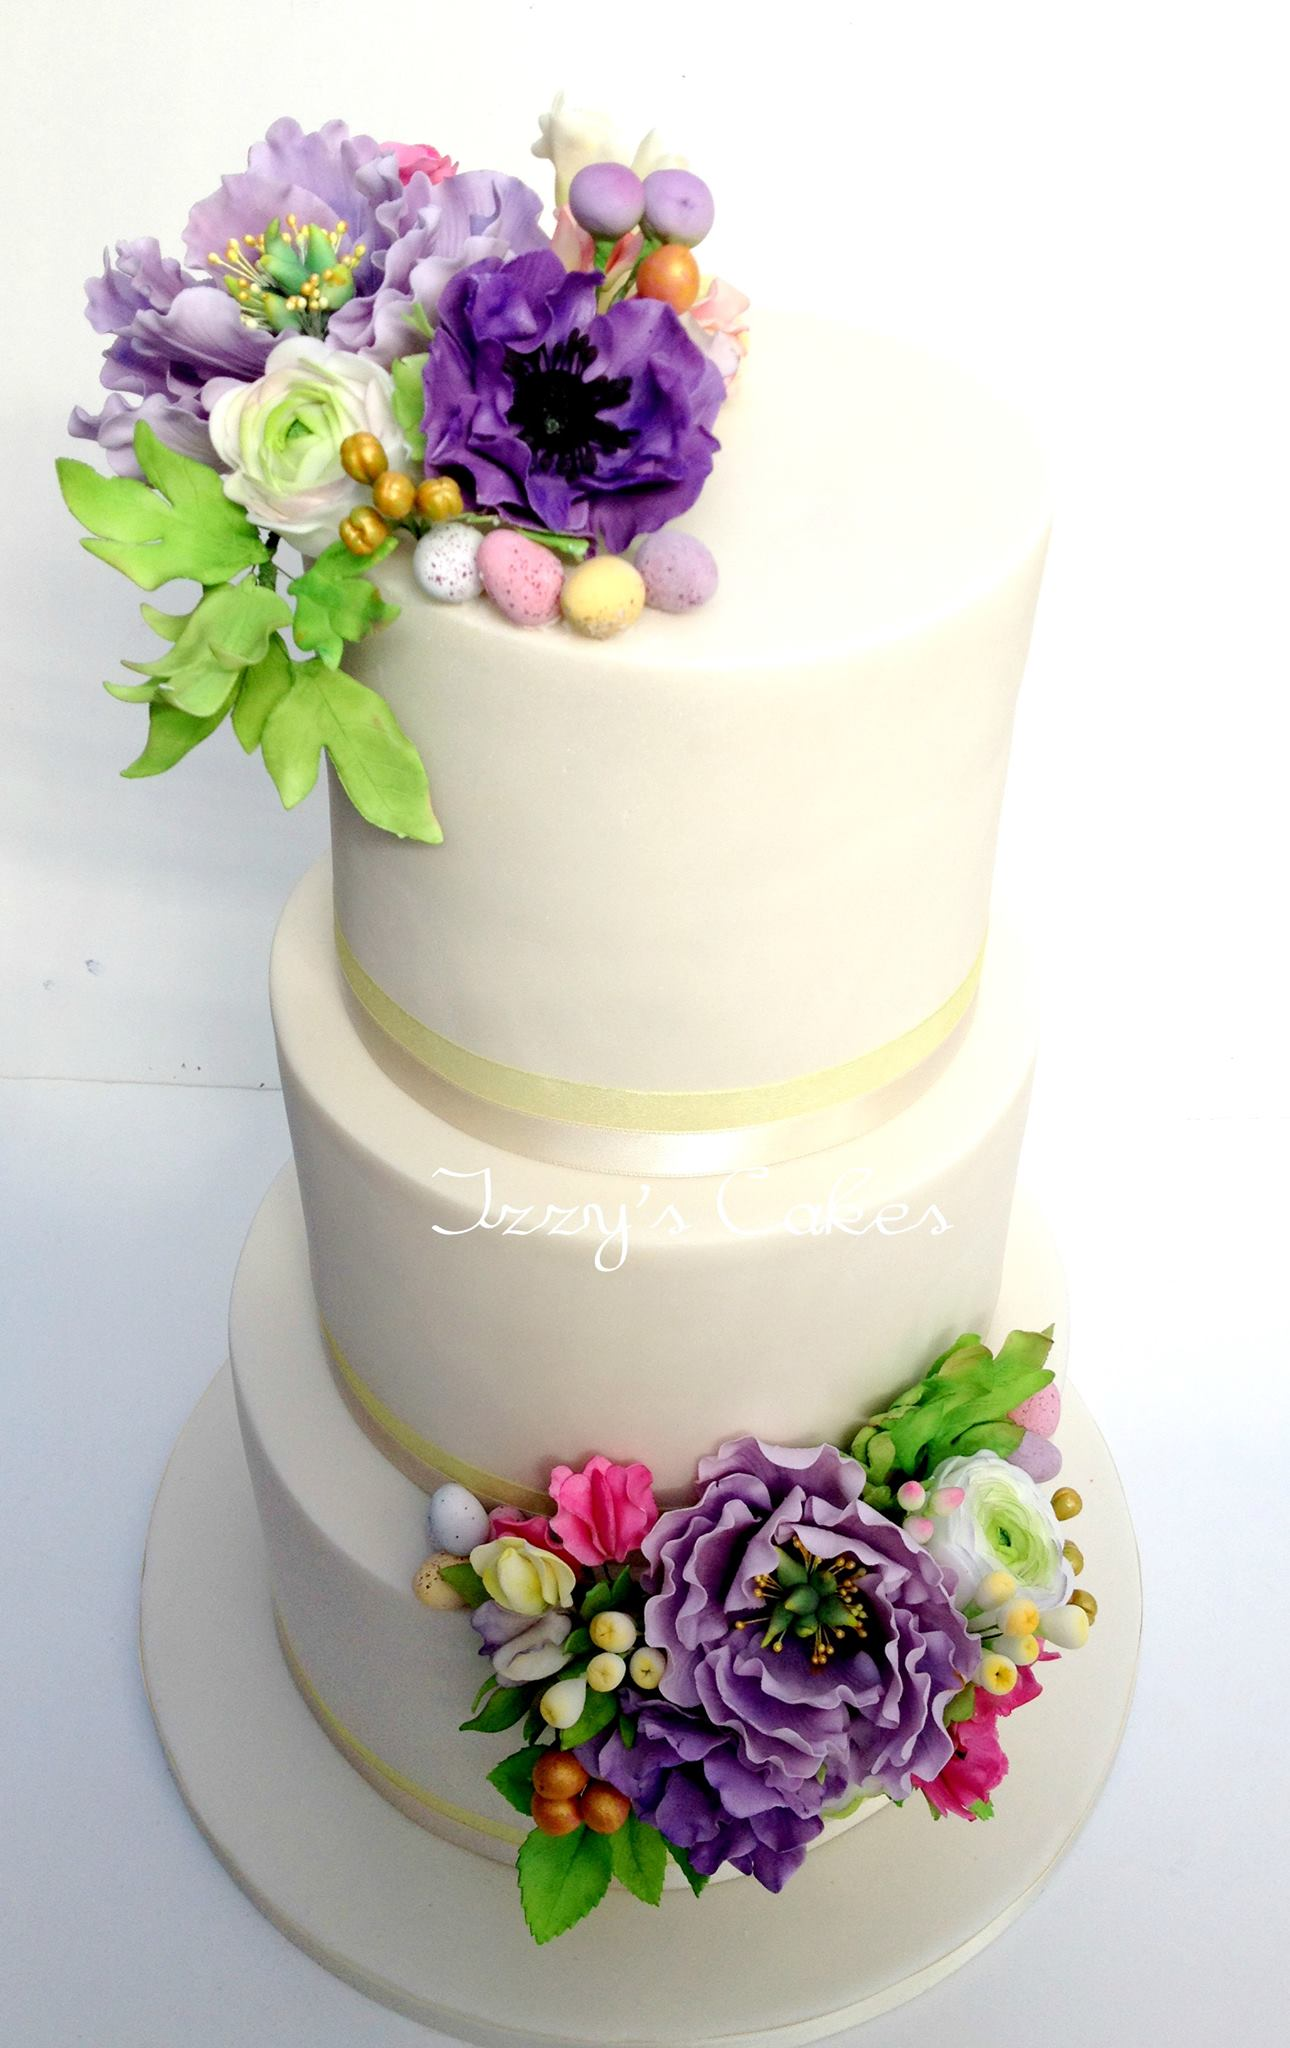 Easter wedding cake by Isabelle Payne - Isabelle's Cake Design